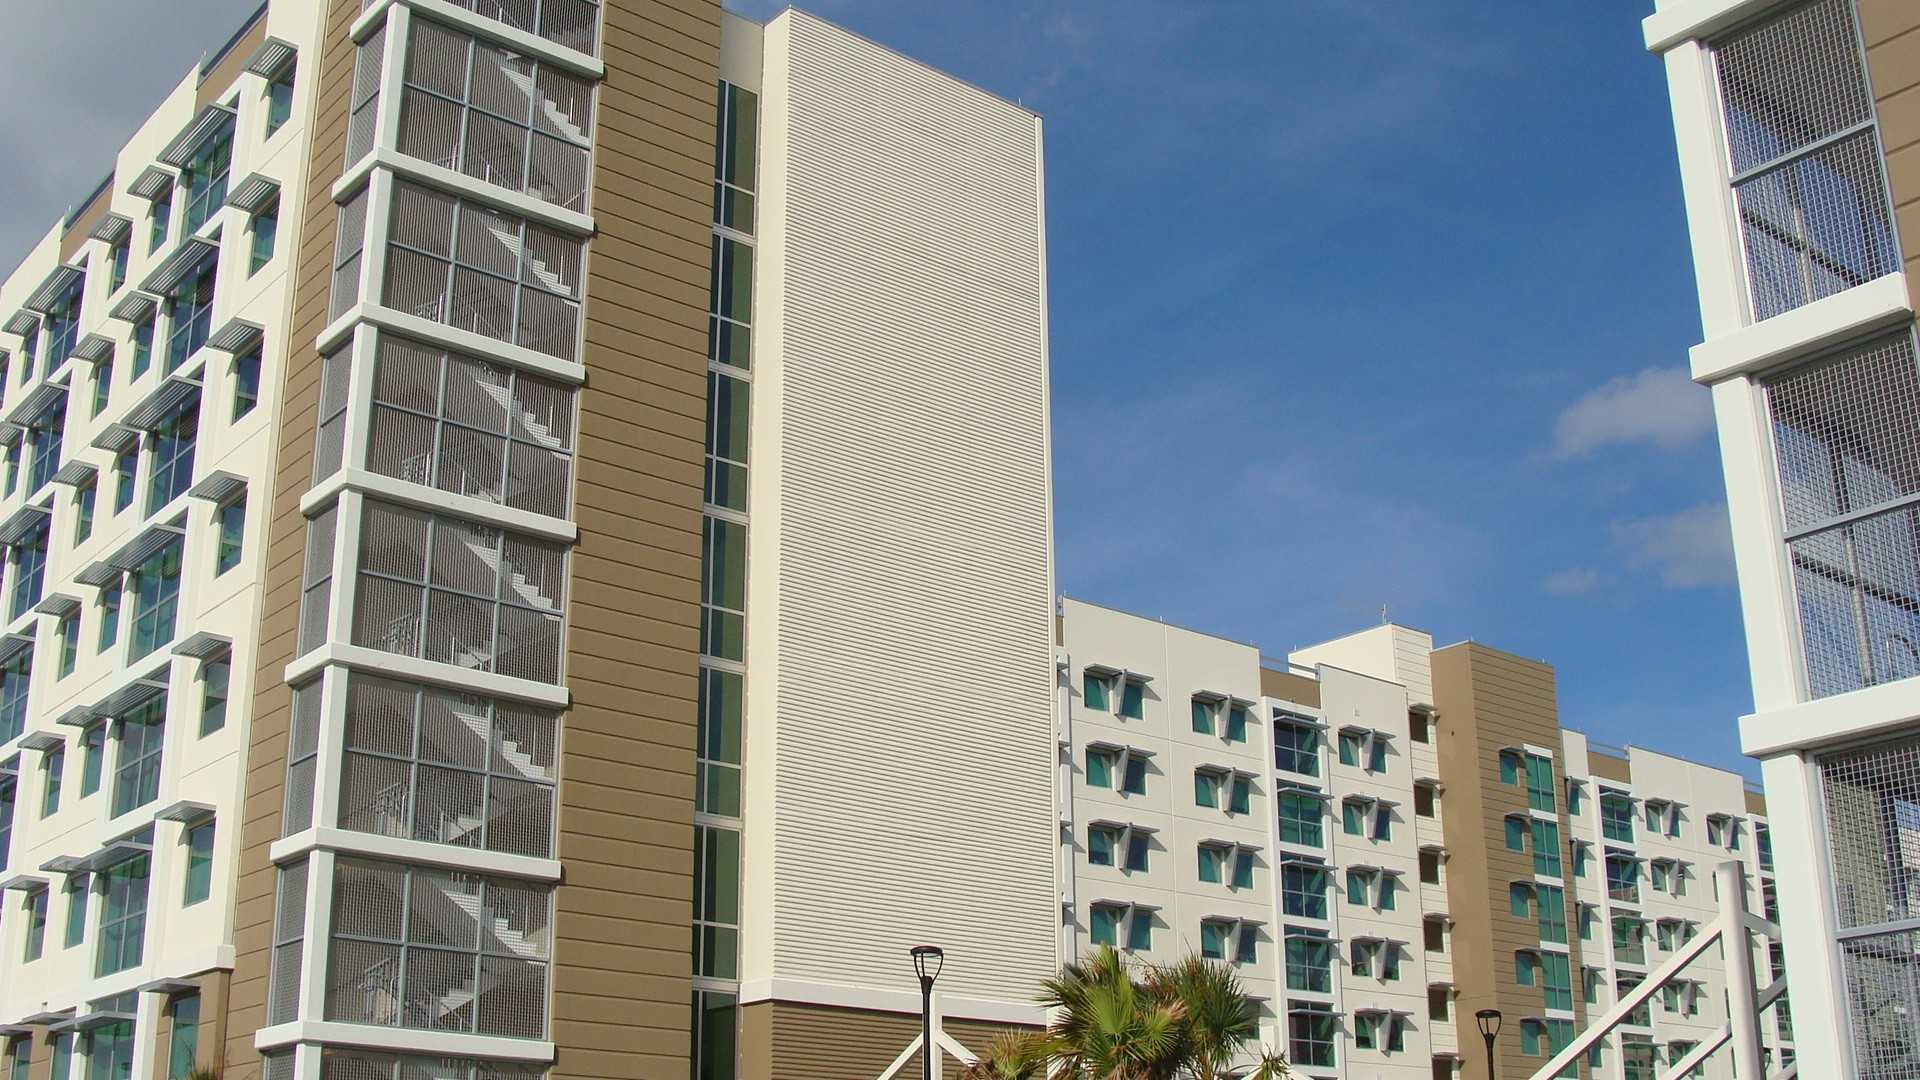 With new housing FAU gets closer to traditional campus